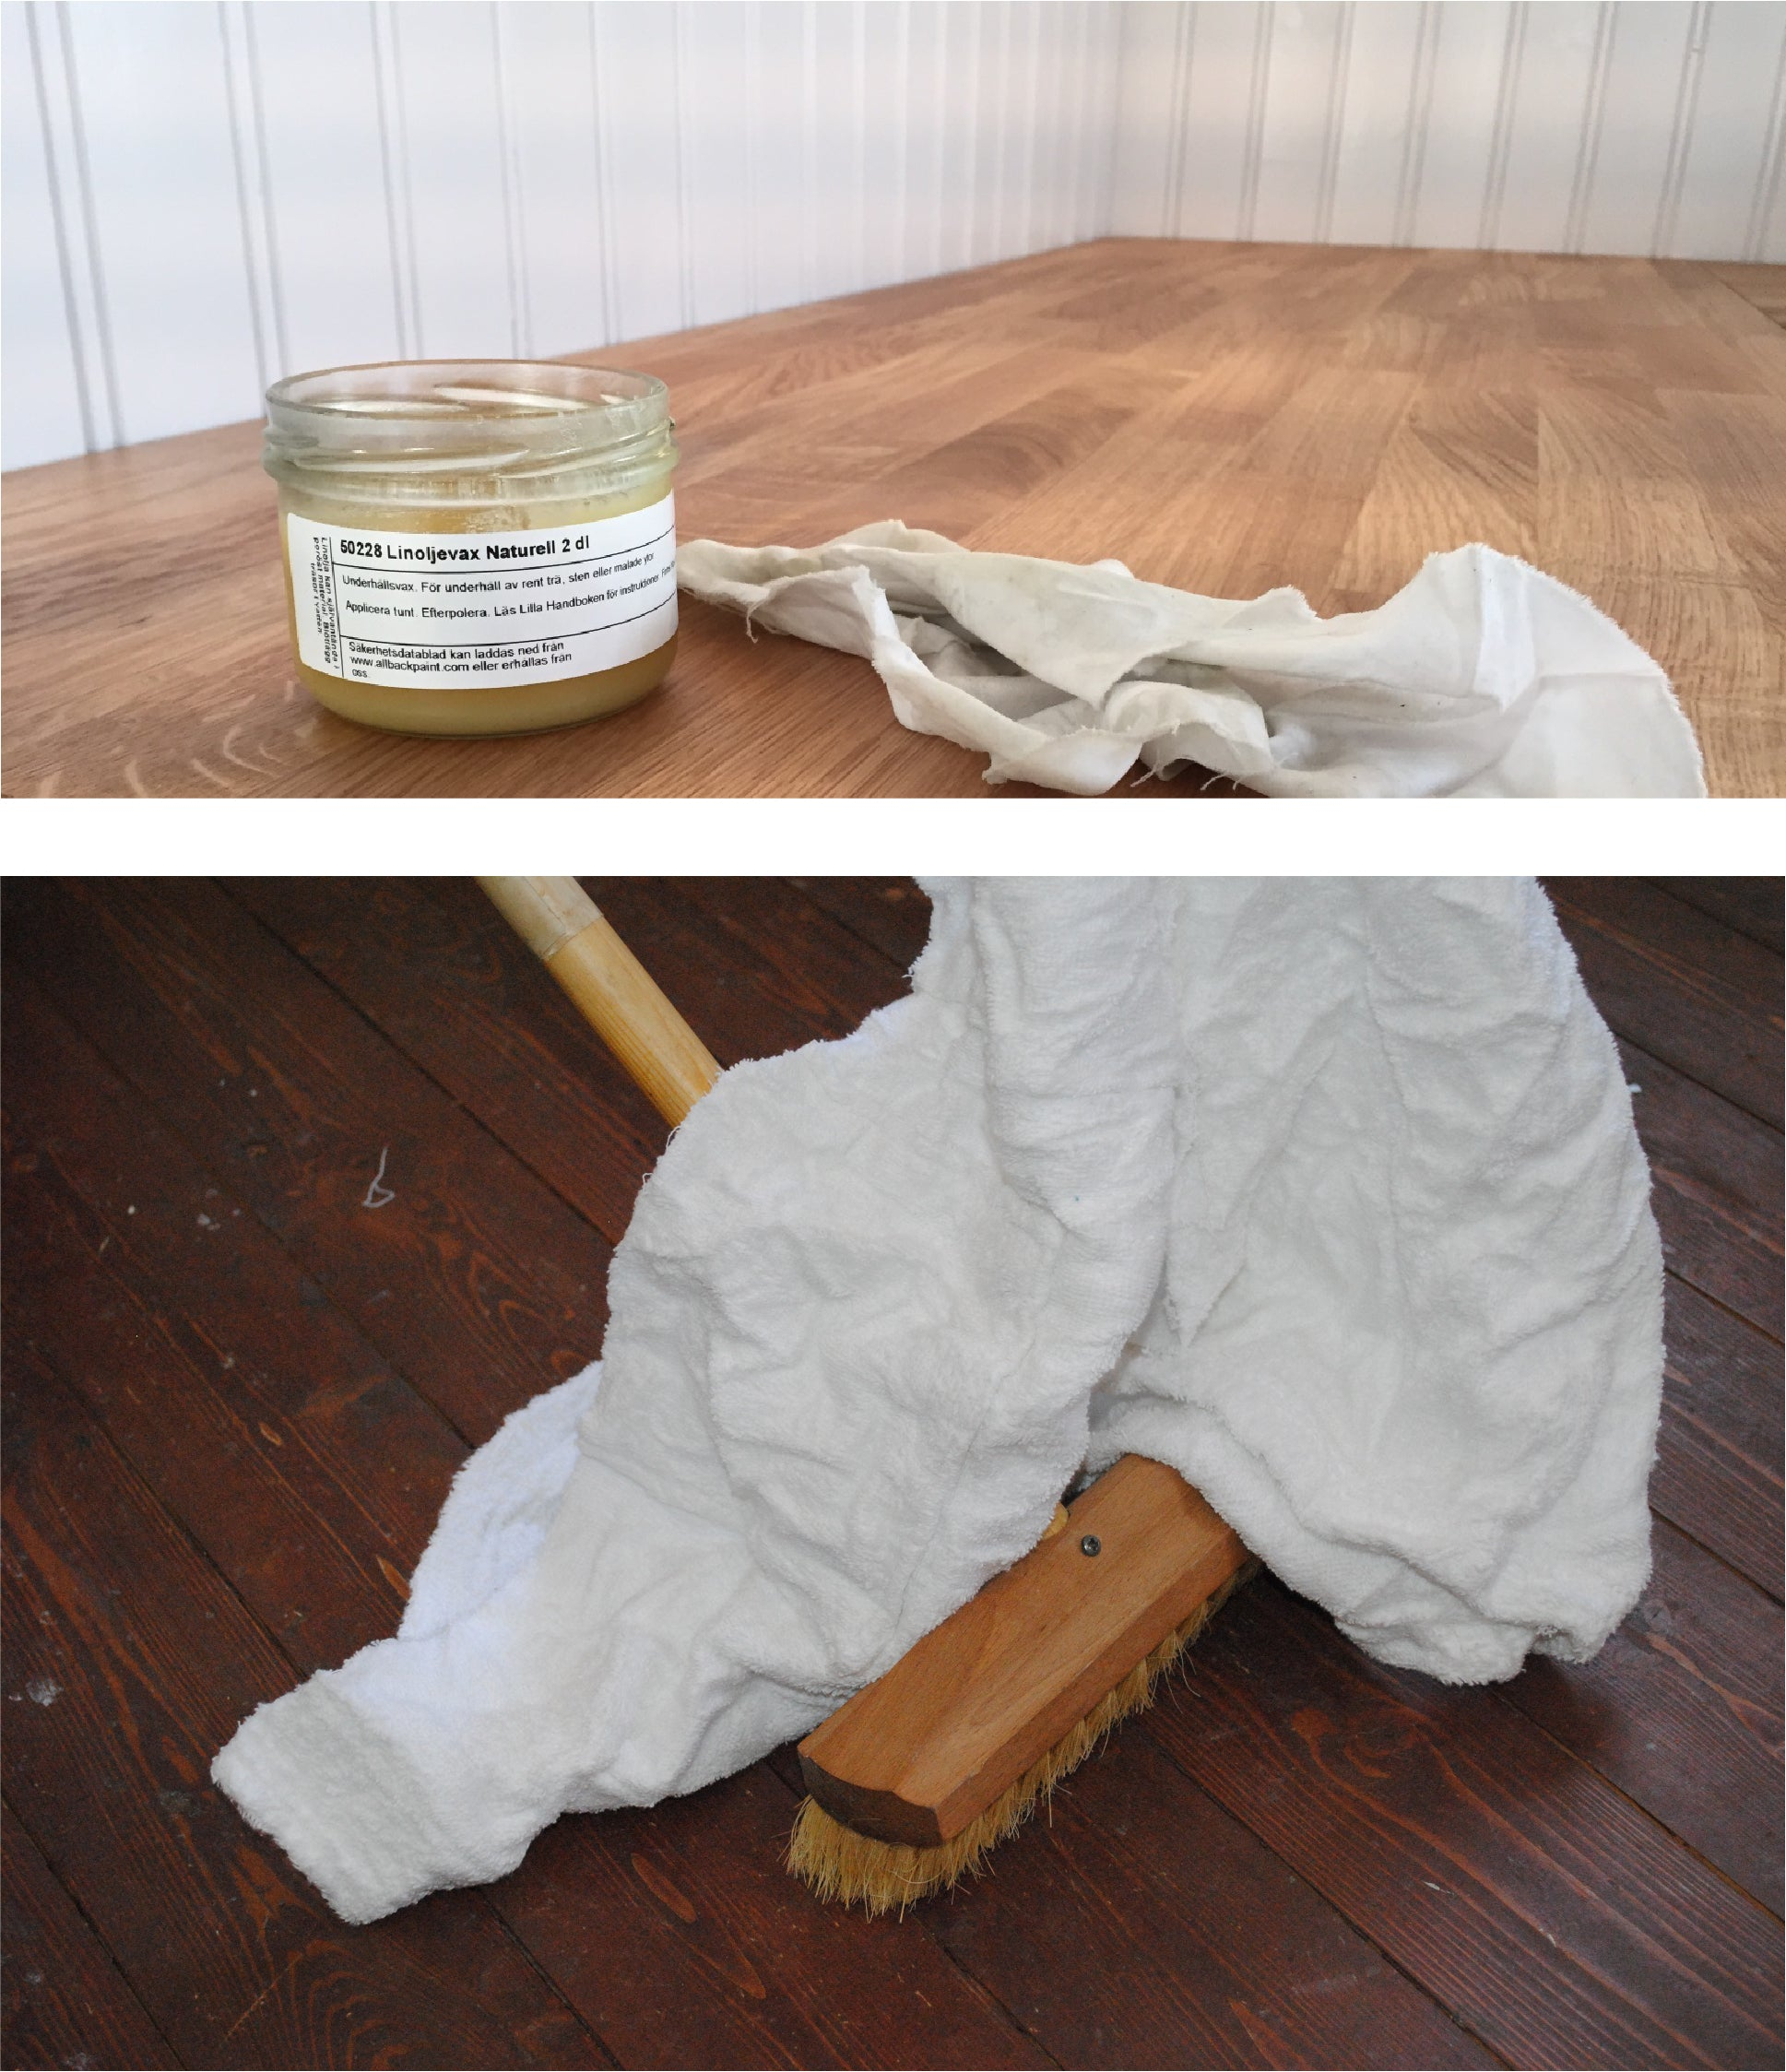 Linseed Oil Wax for counters or floors.